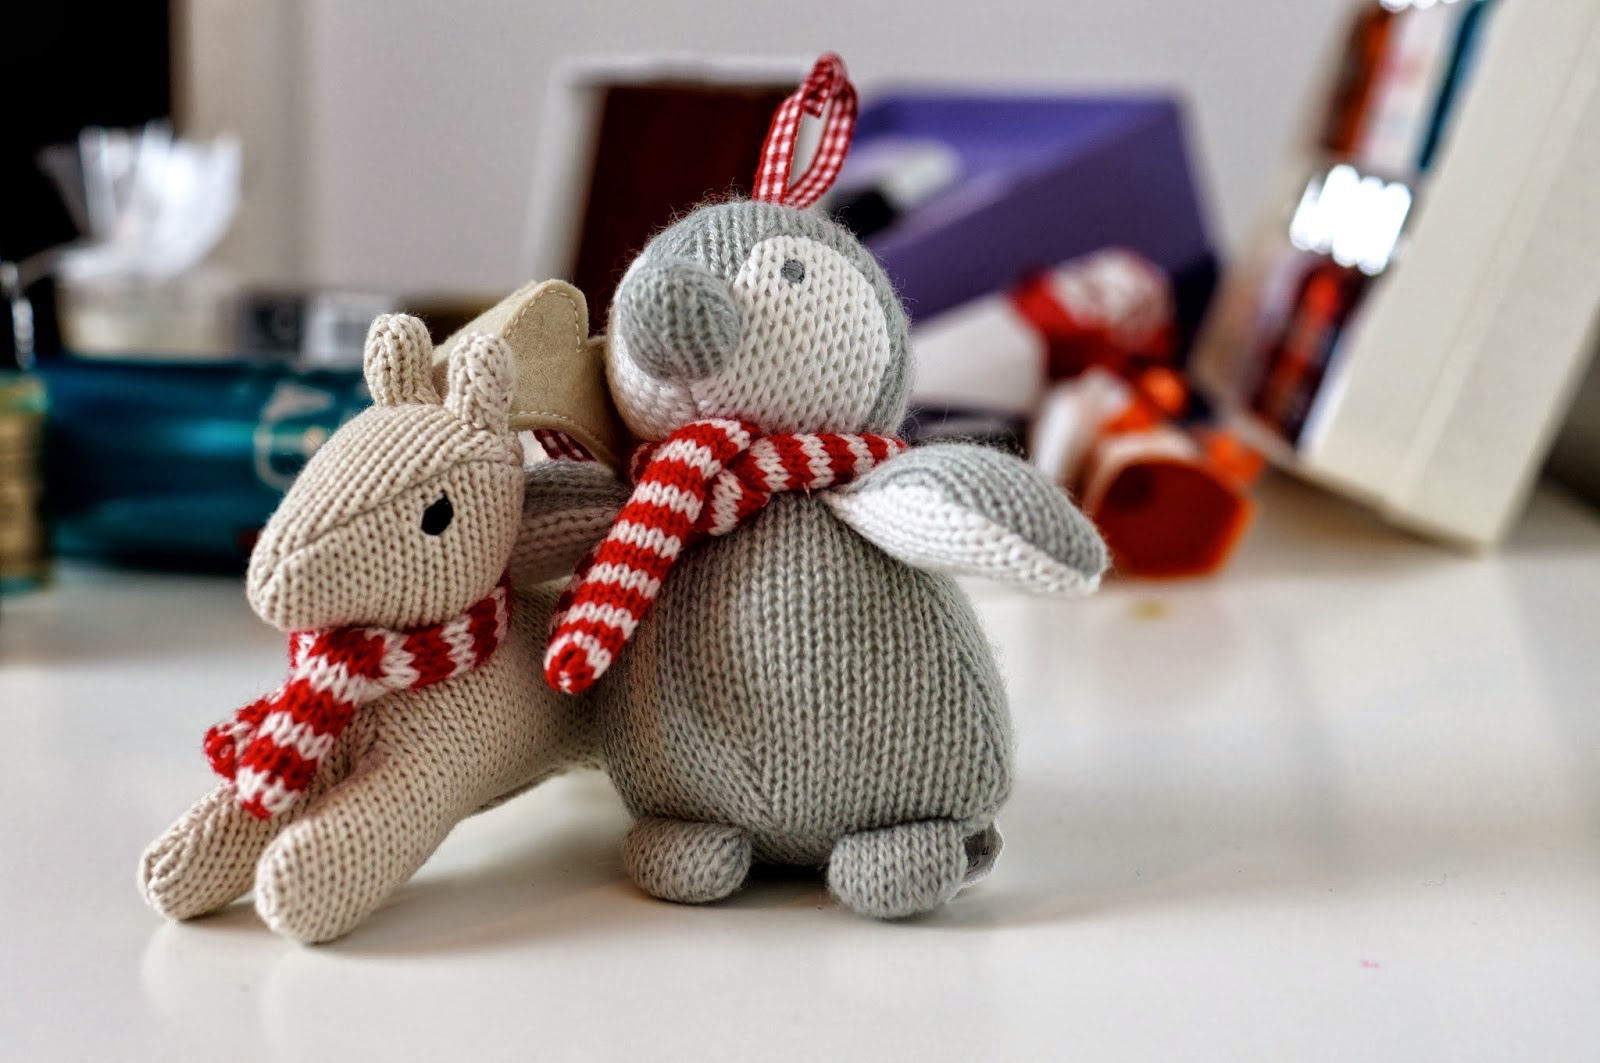 hand-made-Christmas-toys-cute-knitted-reindeer-snowman-dolls-image-photos.jpg